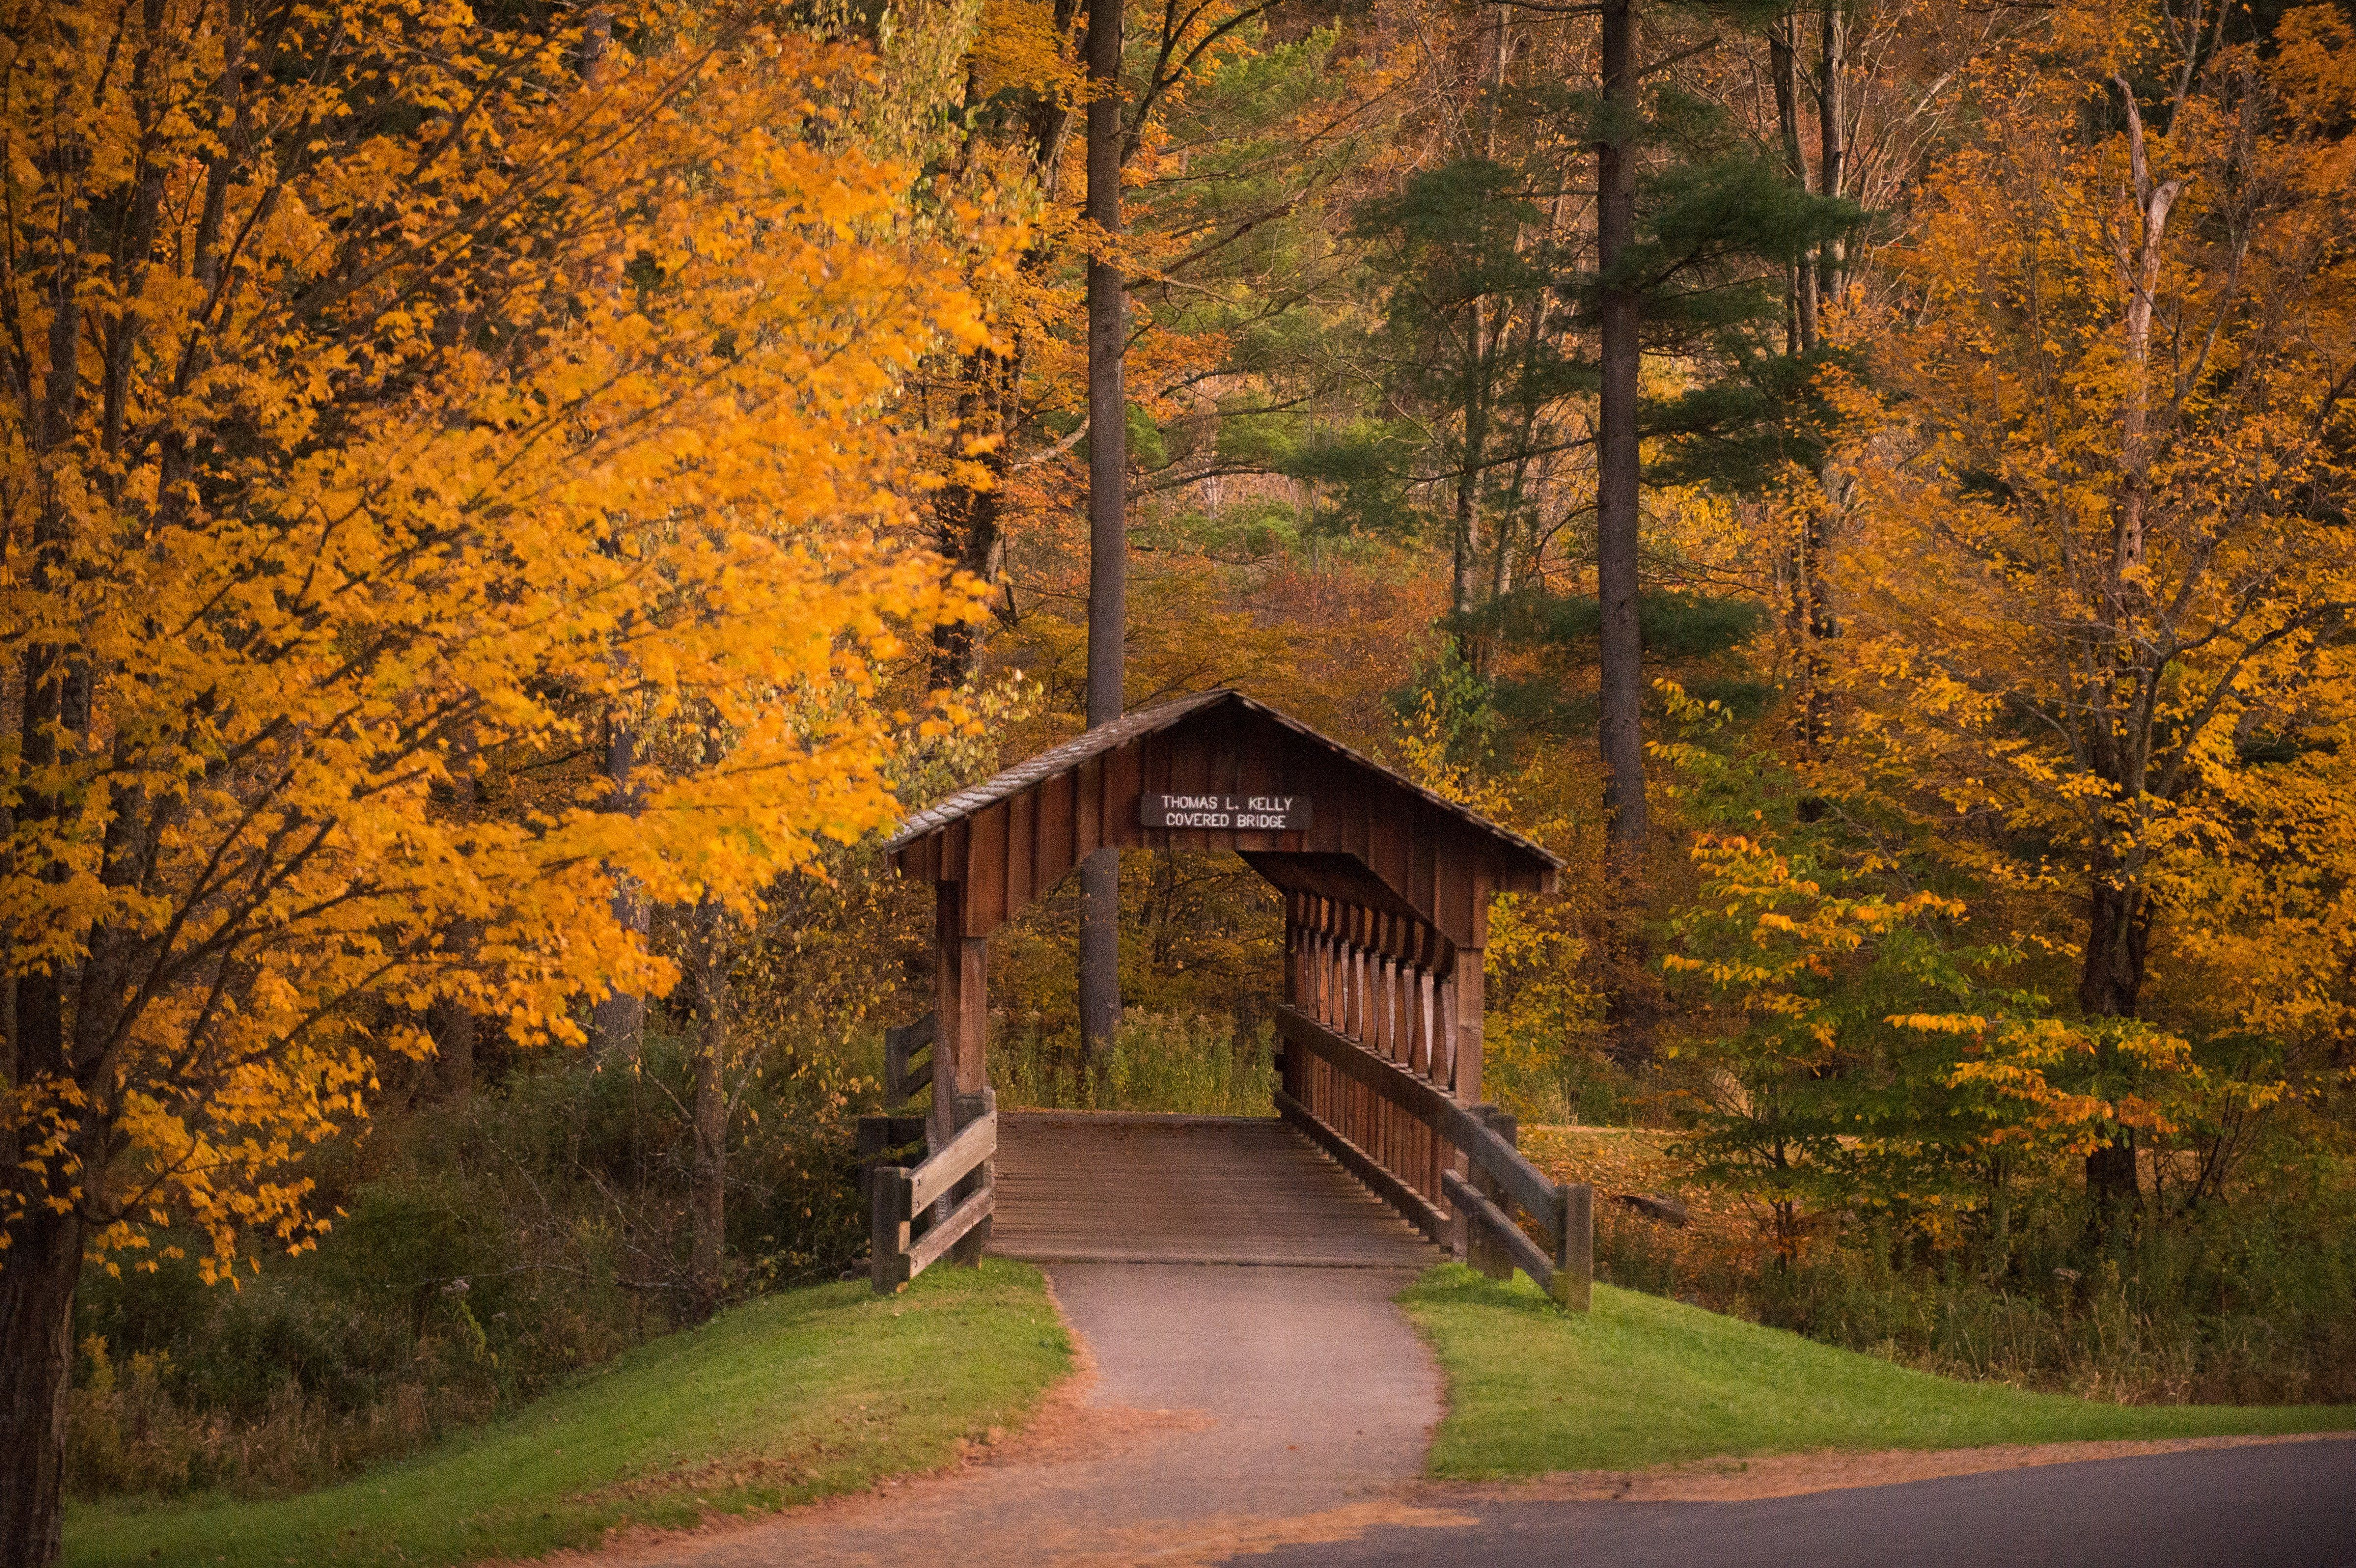 Fall foliage: A view of the Thomas L  Kelly Covered Bridge